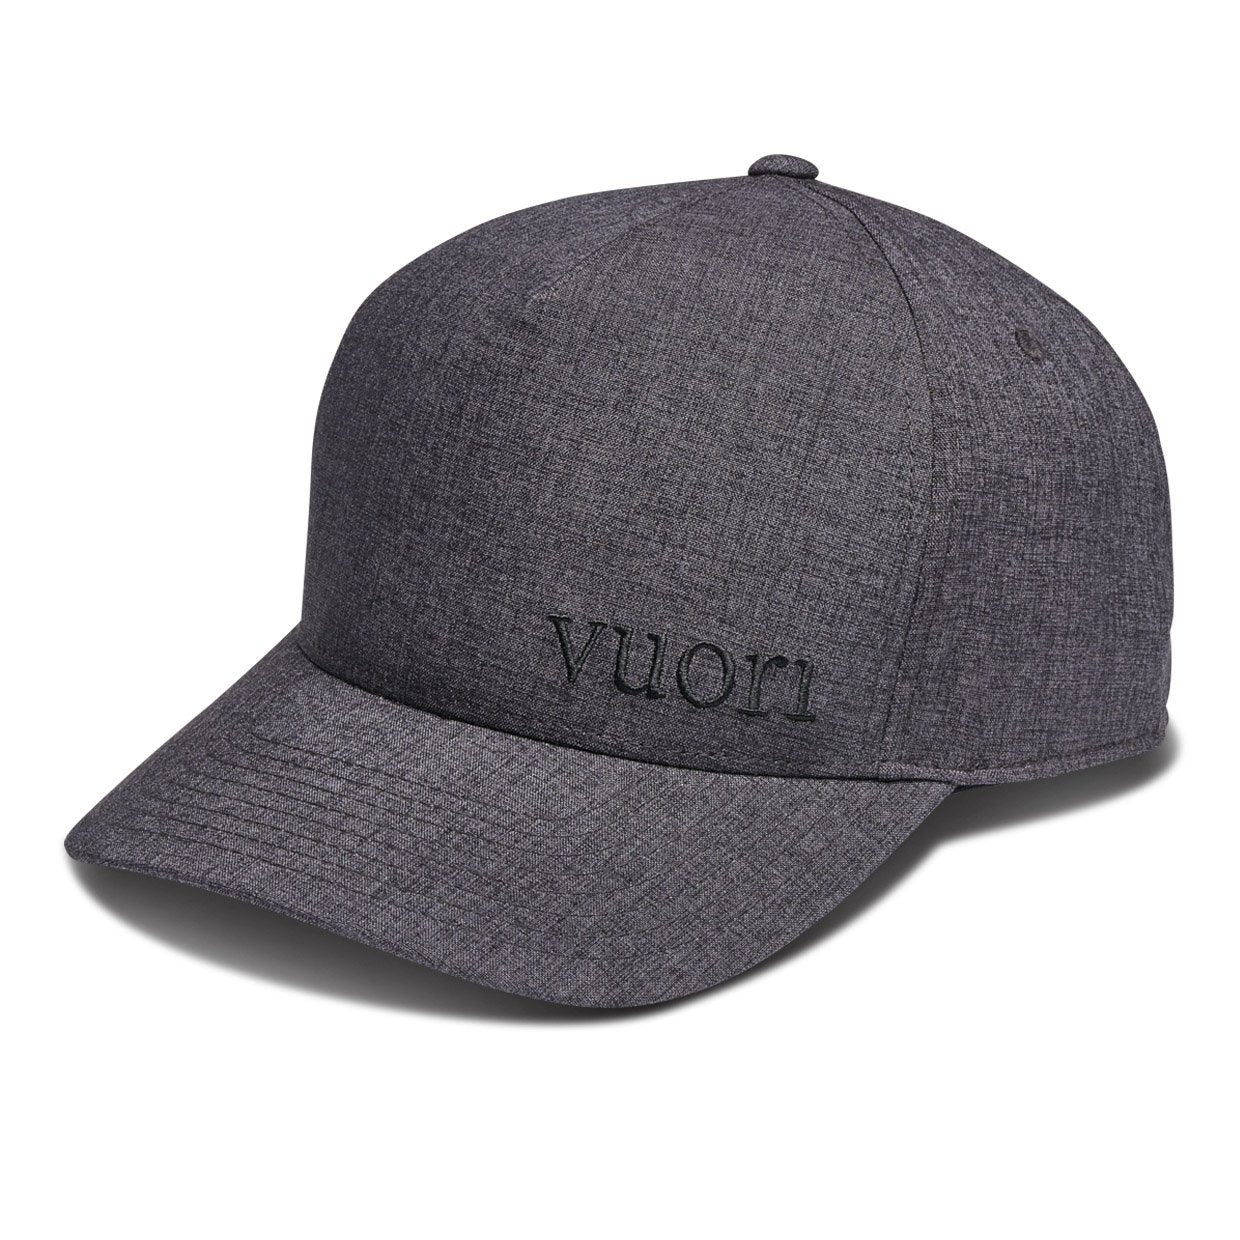 Vuori Performance Hat - Charcoal Heather - Charcoal Heather 1